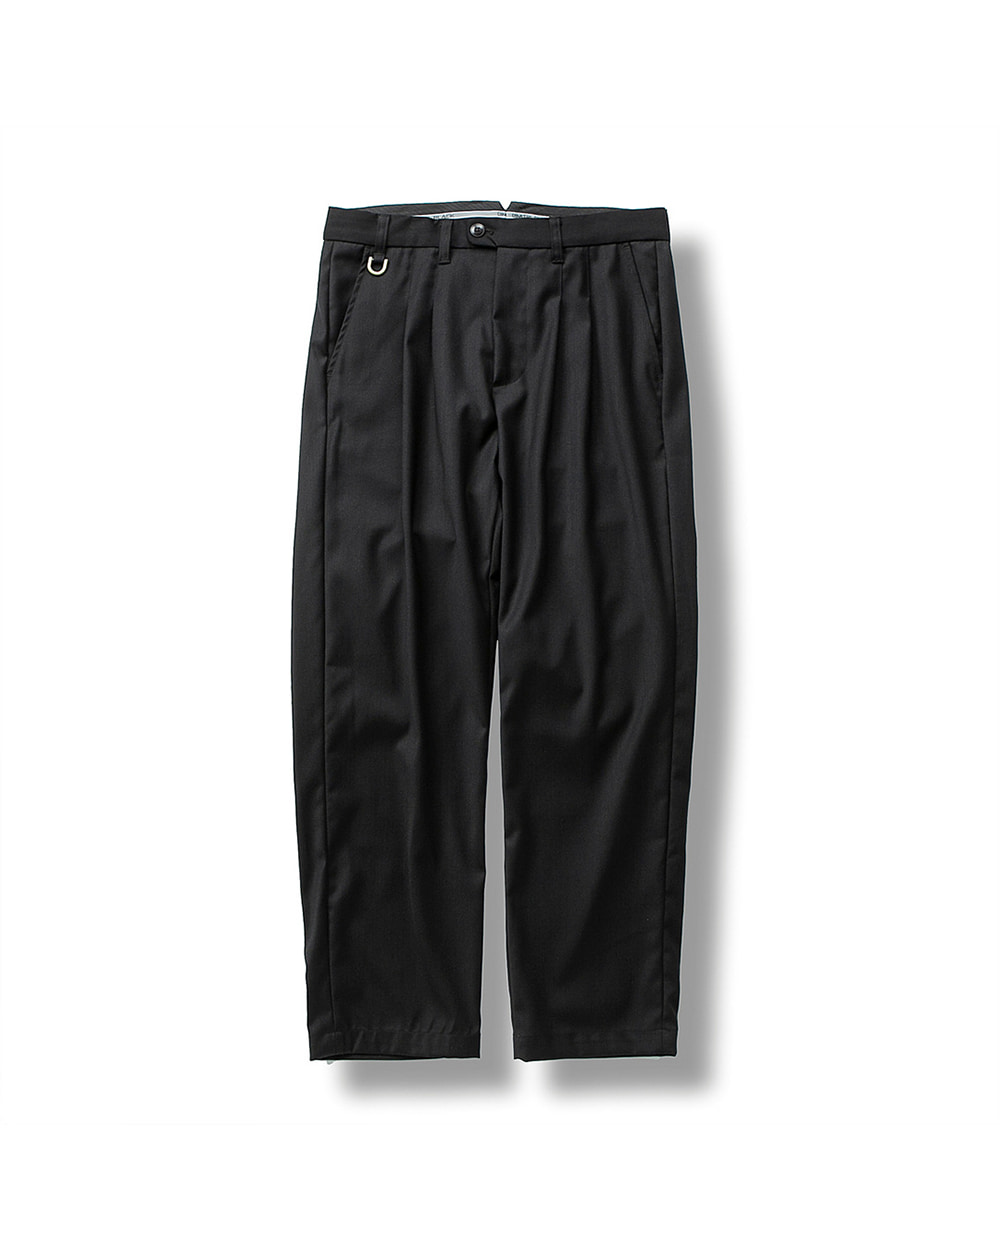 (FW) DOUBLE PLEATS TROUSER BLACK